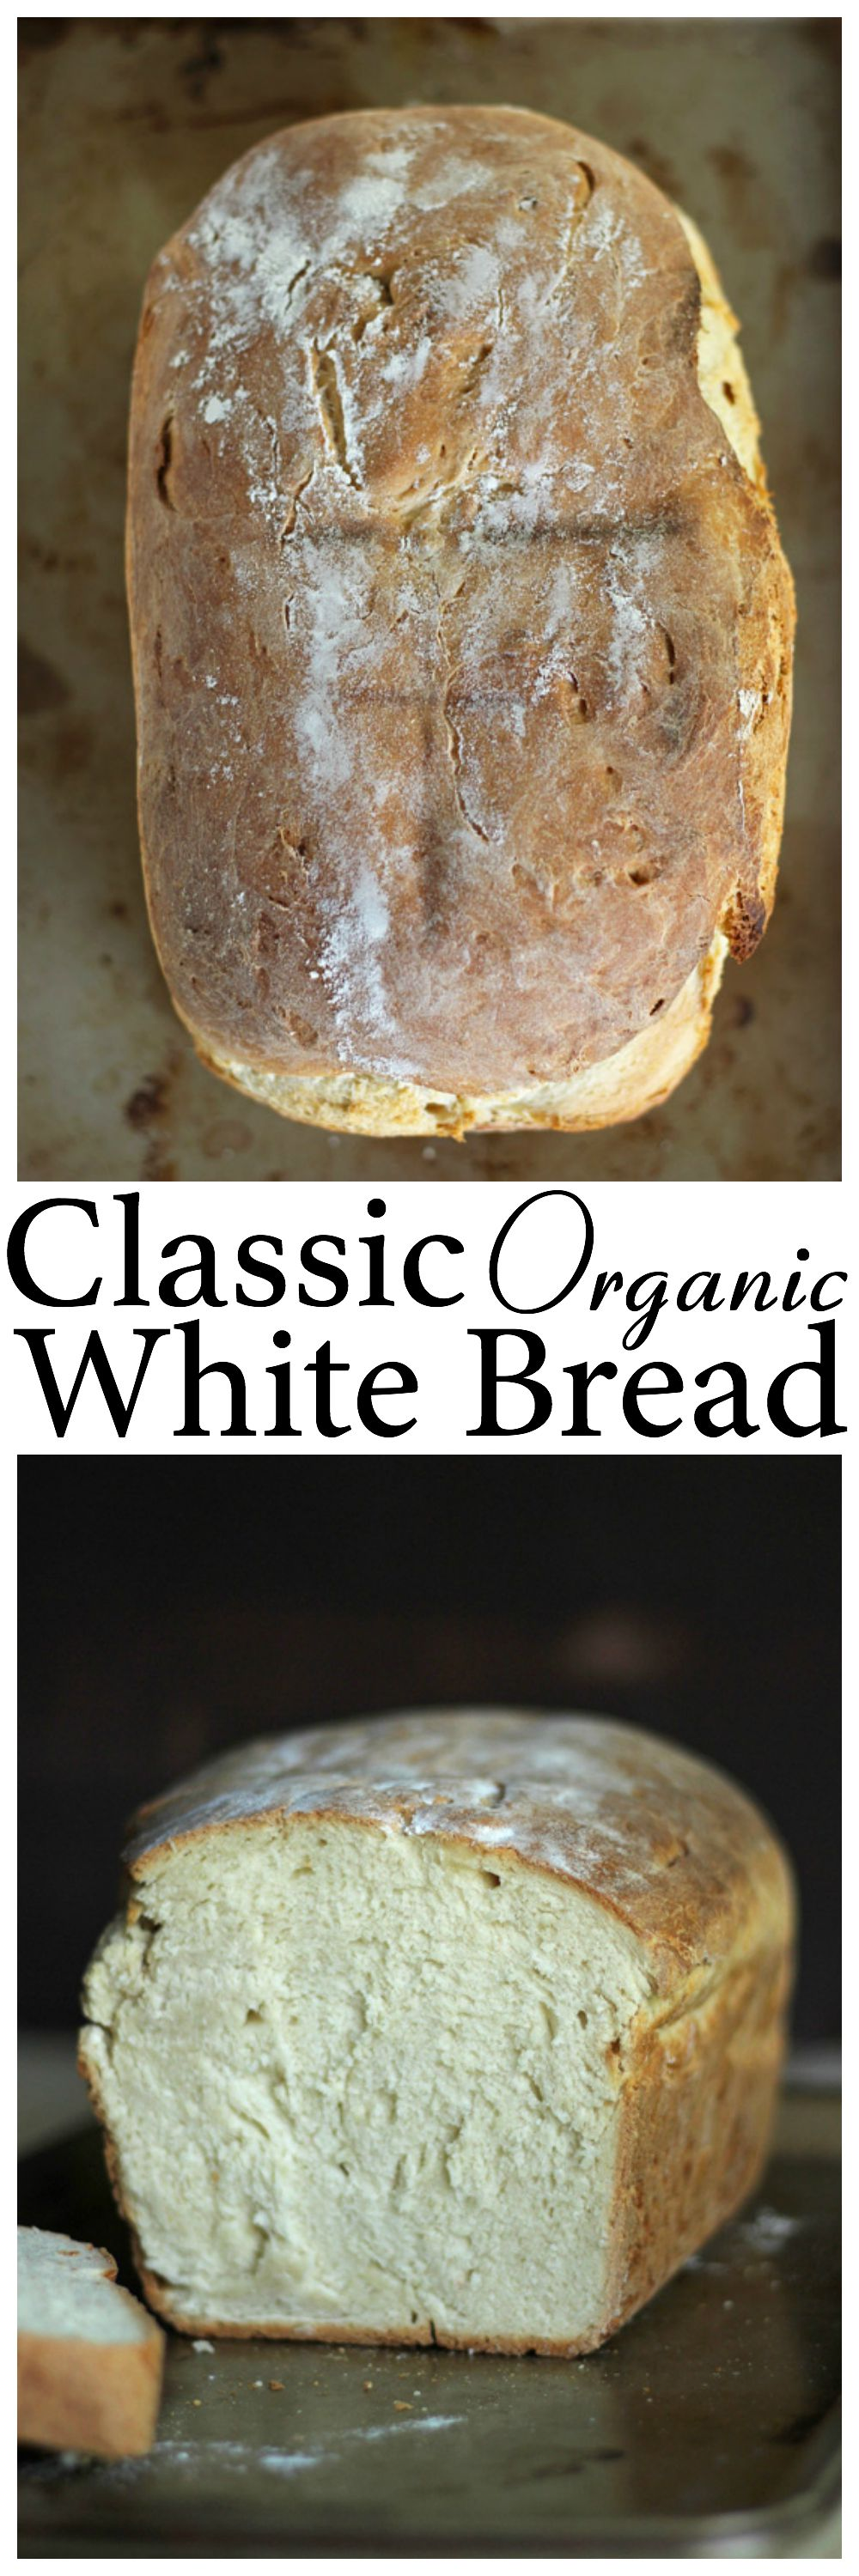 Classic Organic White Bread | NeuroticMommy